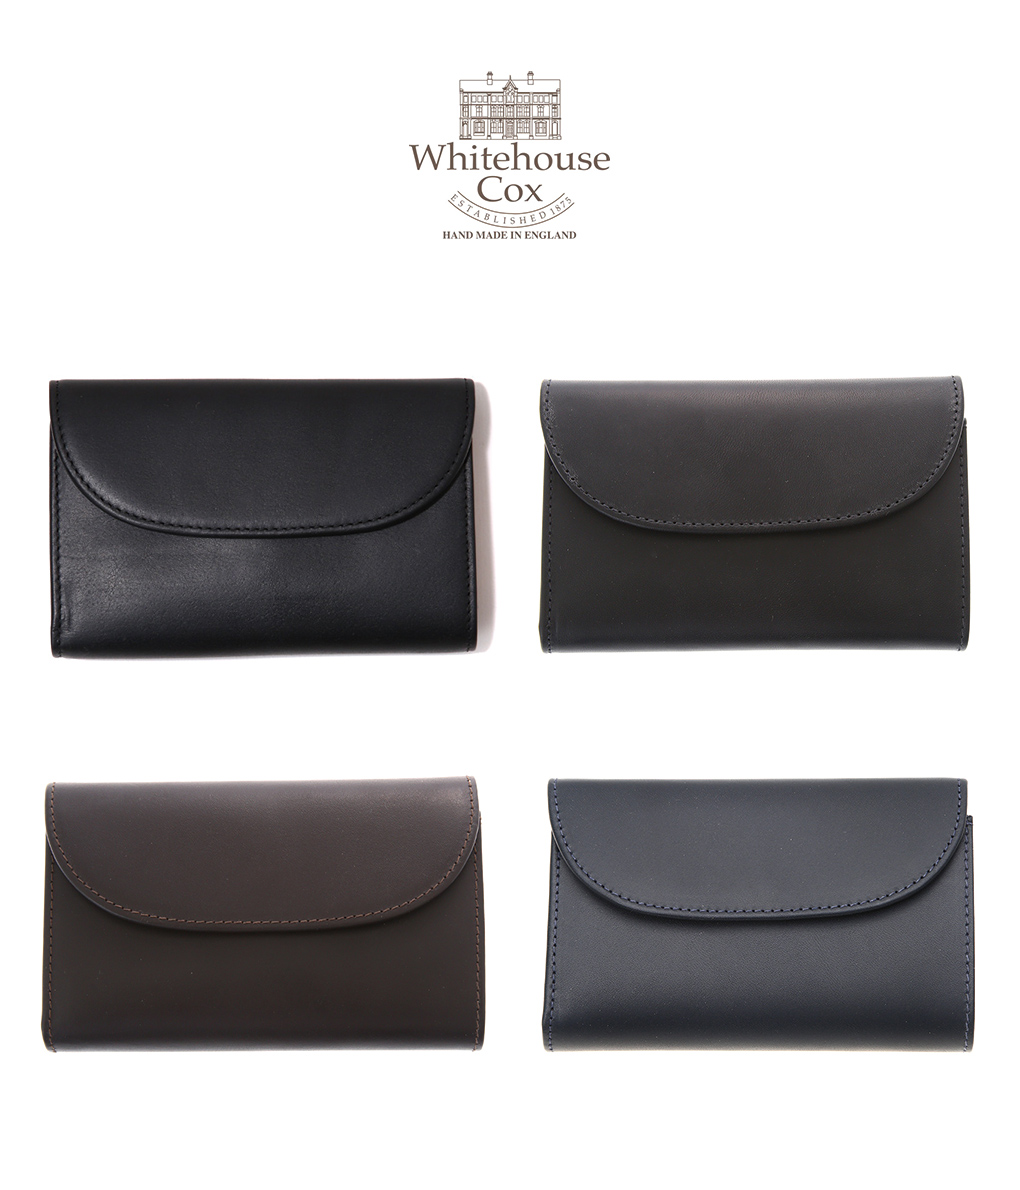 Whitehouse Cox / ホワイトハウスコックス : 【DERBY COLLECTION】3 FOLD PURSE / 全4色 : ウォレット 財布 3つ折り ホースハイドレザー ギフト プレゼント ラッピング可能 : S-7660-DERBY【MUS】